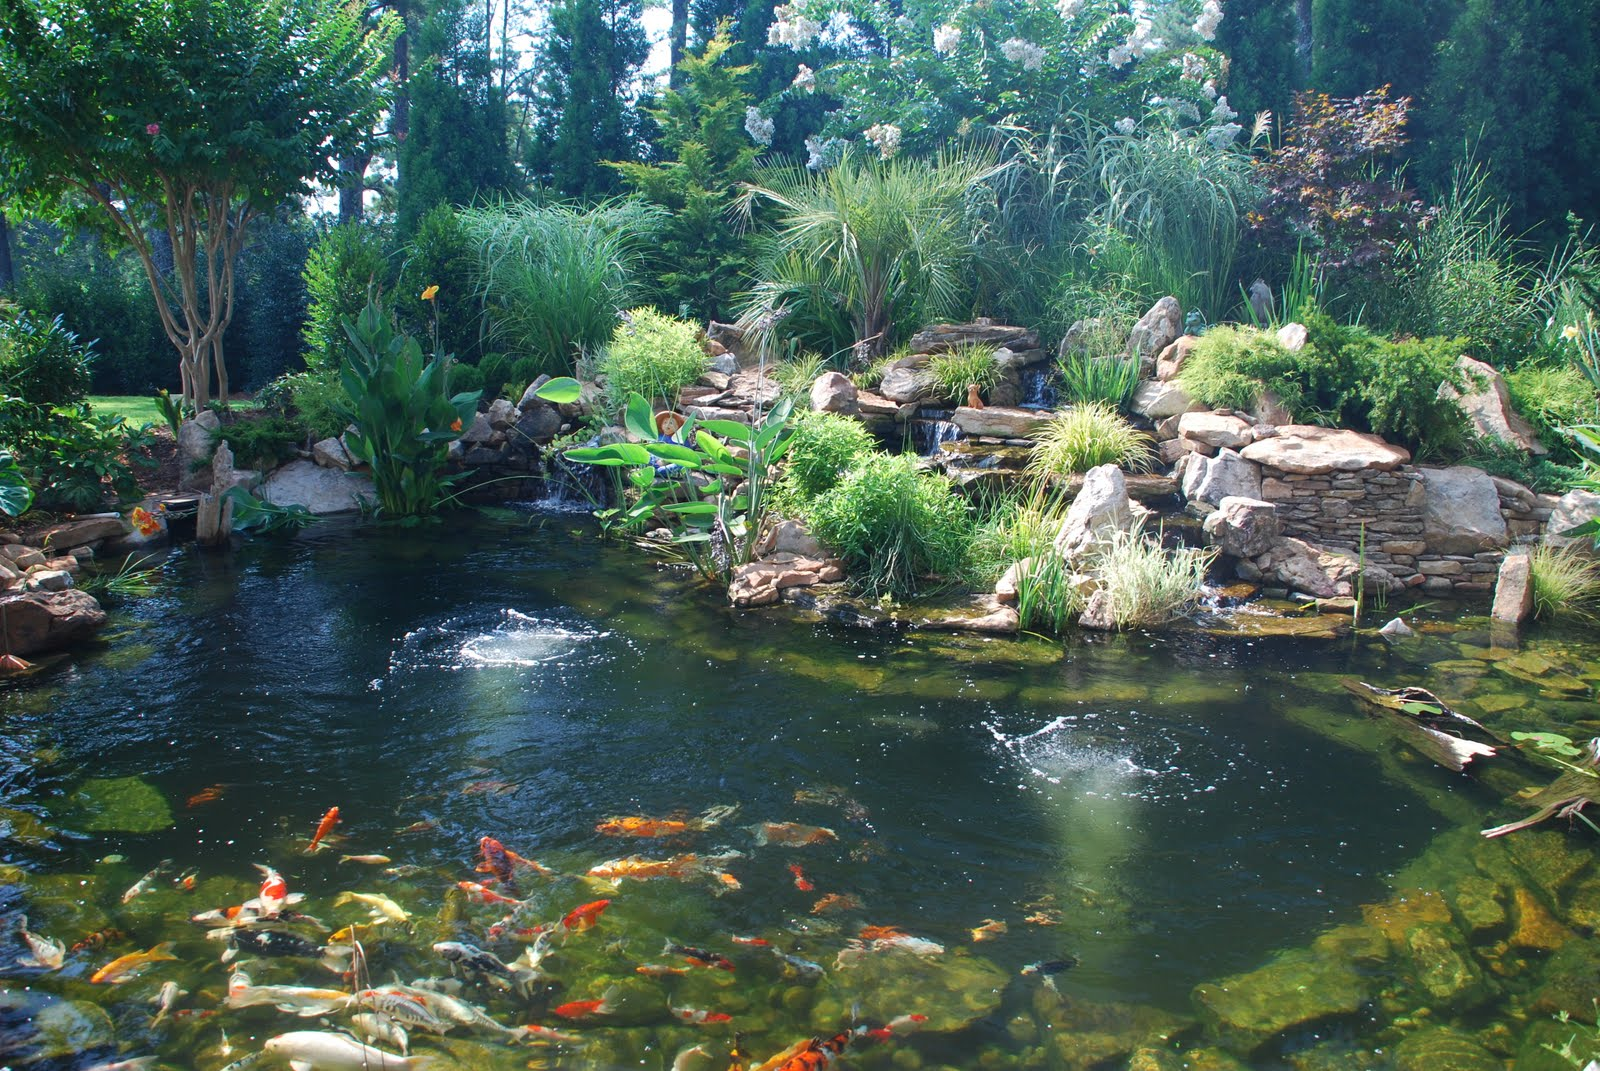 Most Inspiring Landscape Water - Pond  Trends_793939.jpg